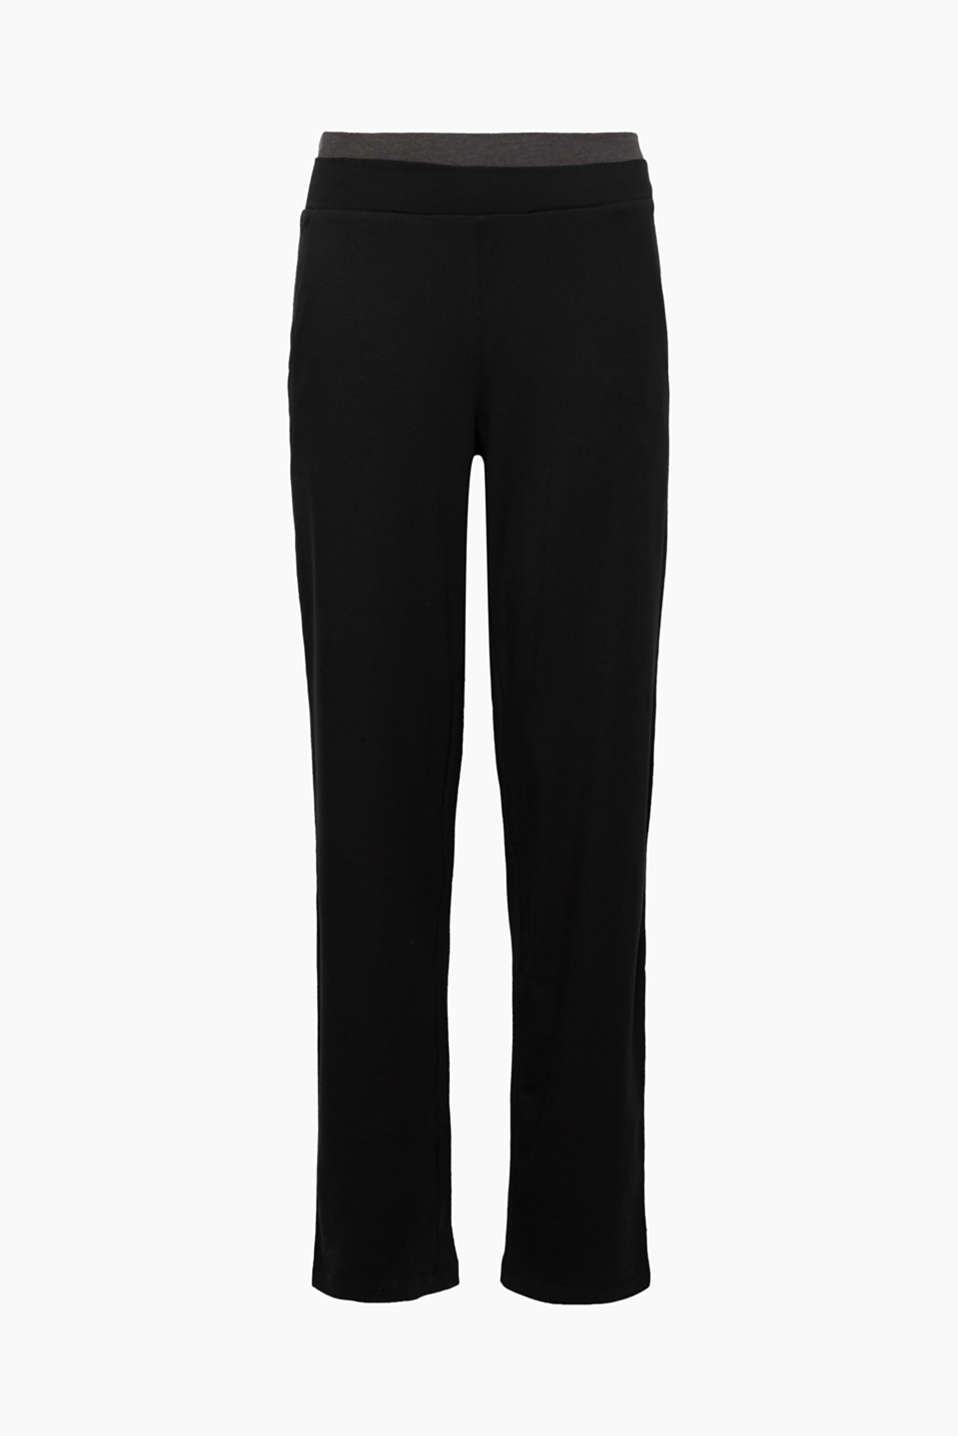 For the gym or relaxing on the sofa: These casual jersey trousers are the perfect piece for many locations!